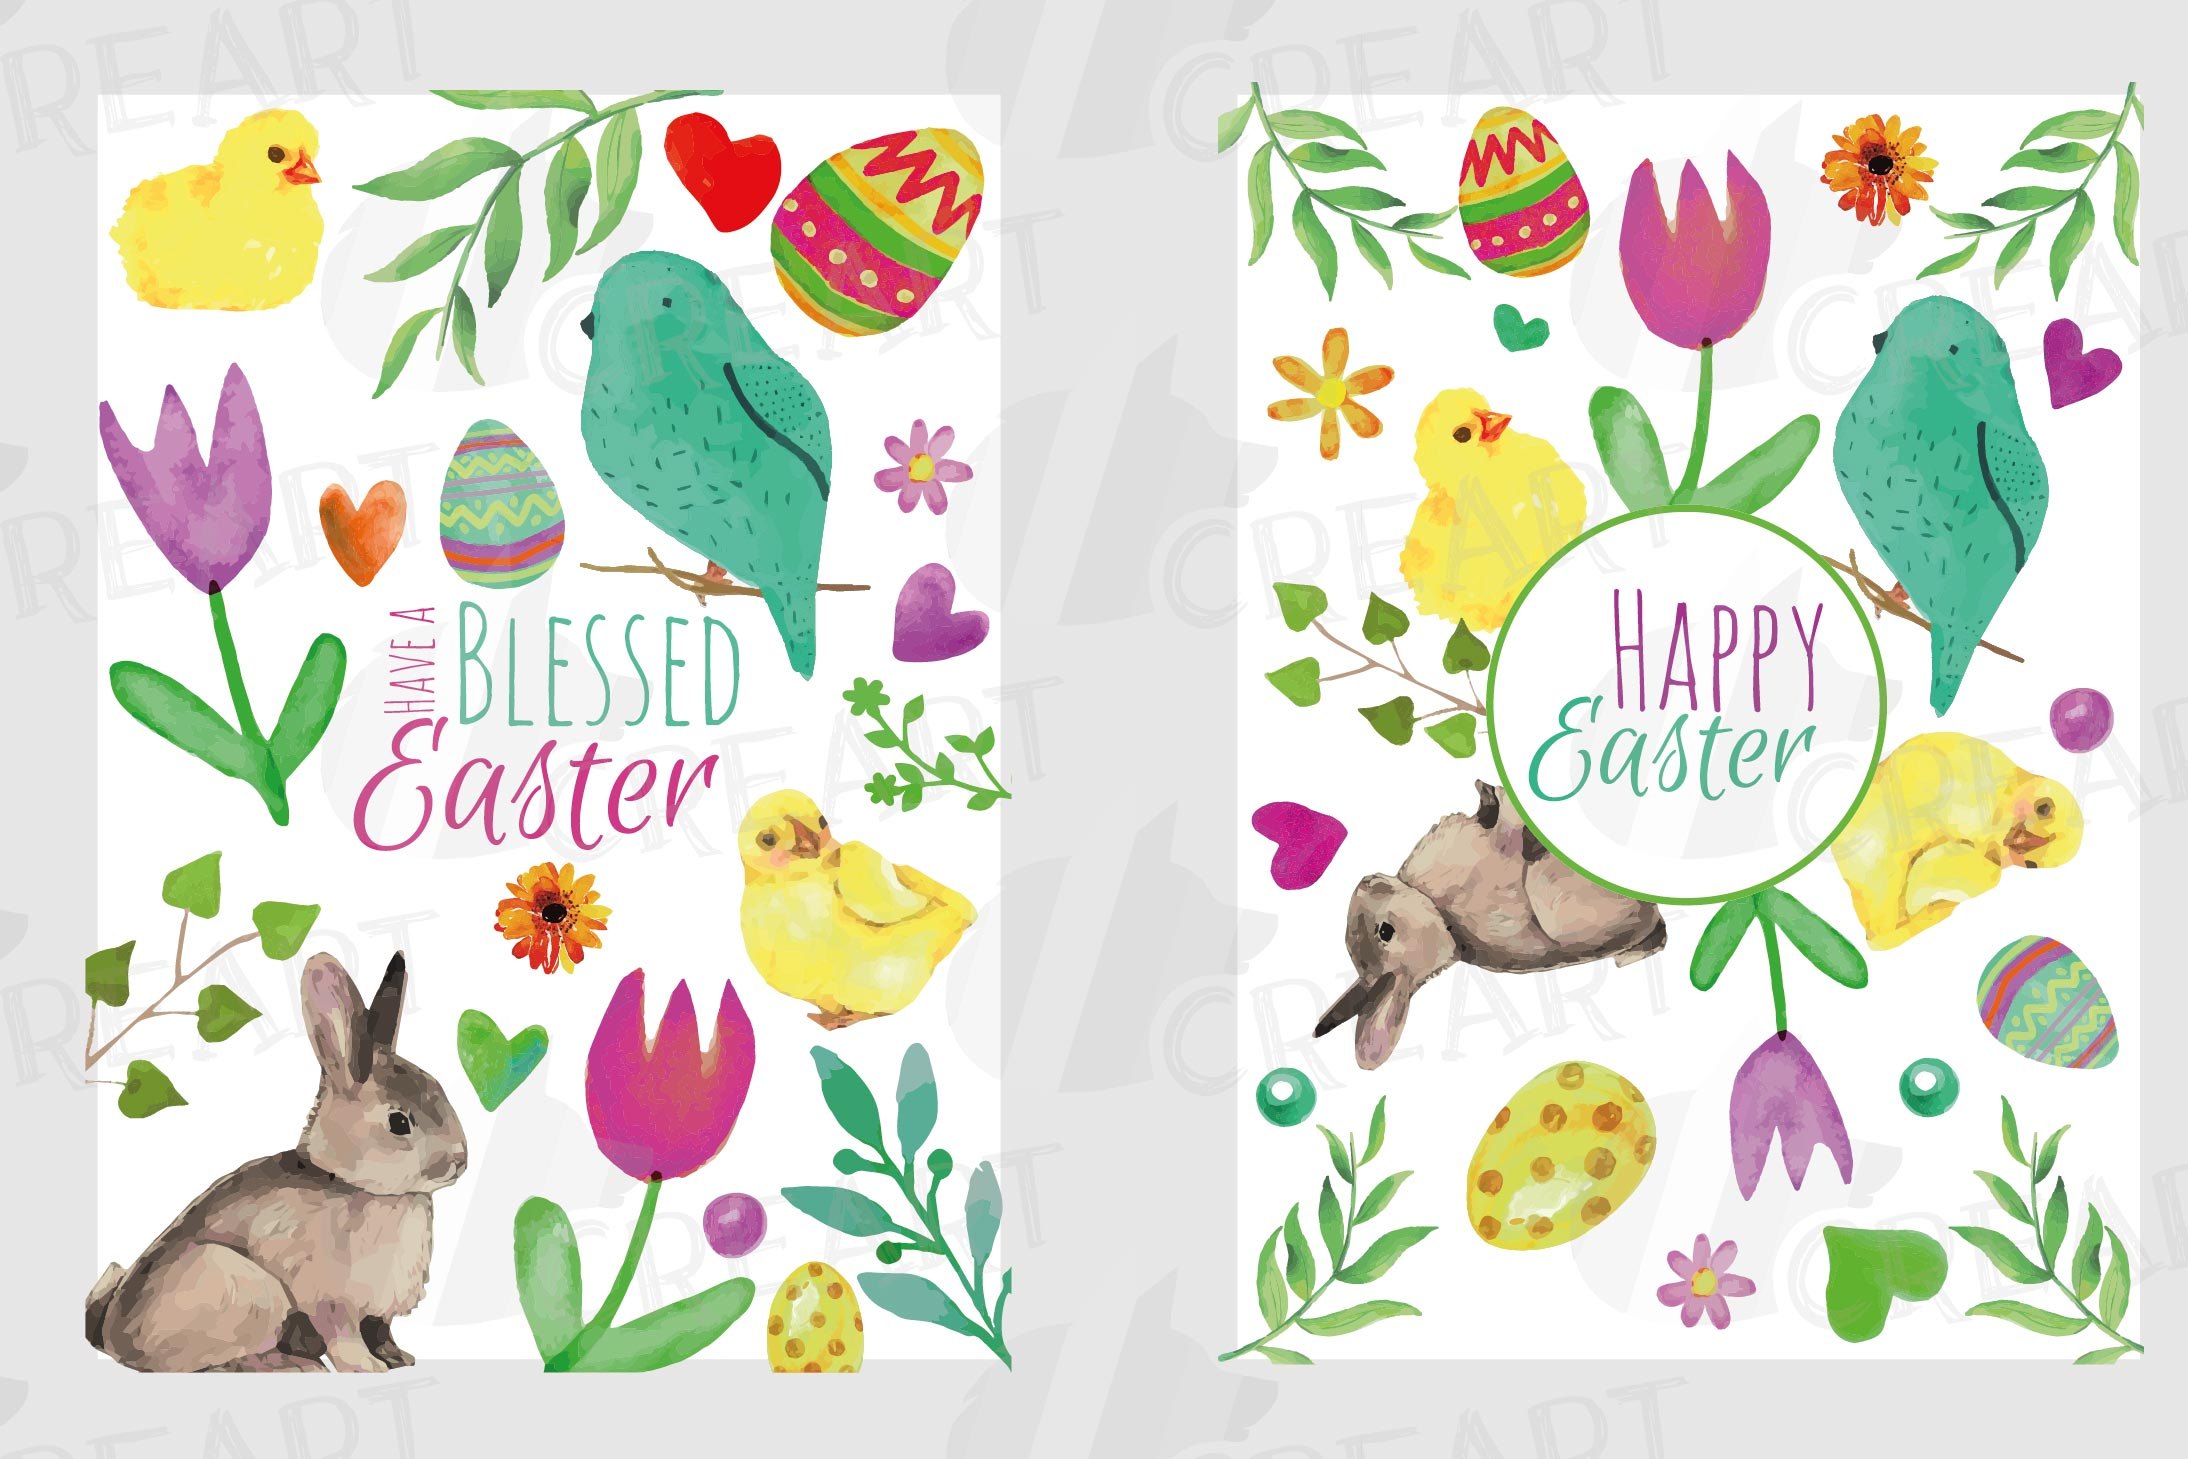 Easter greeting cards, 6 Happy Easter cards, colorful cards example image 5